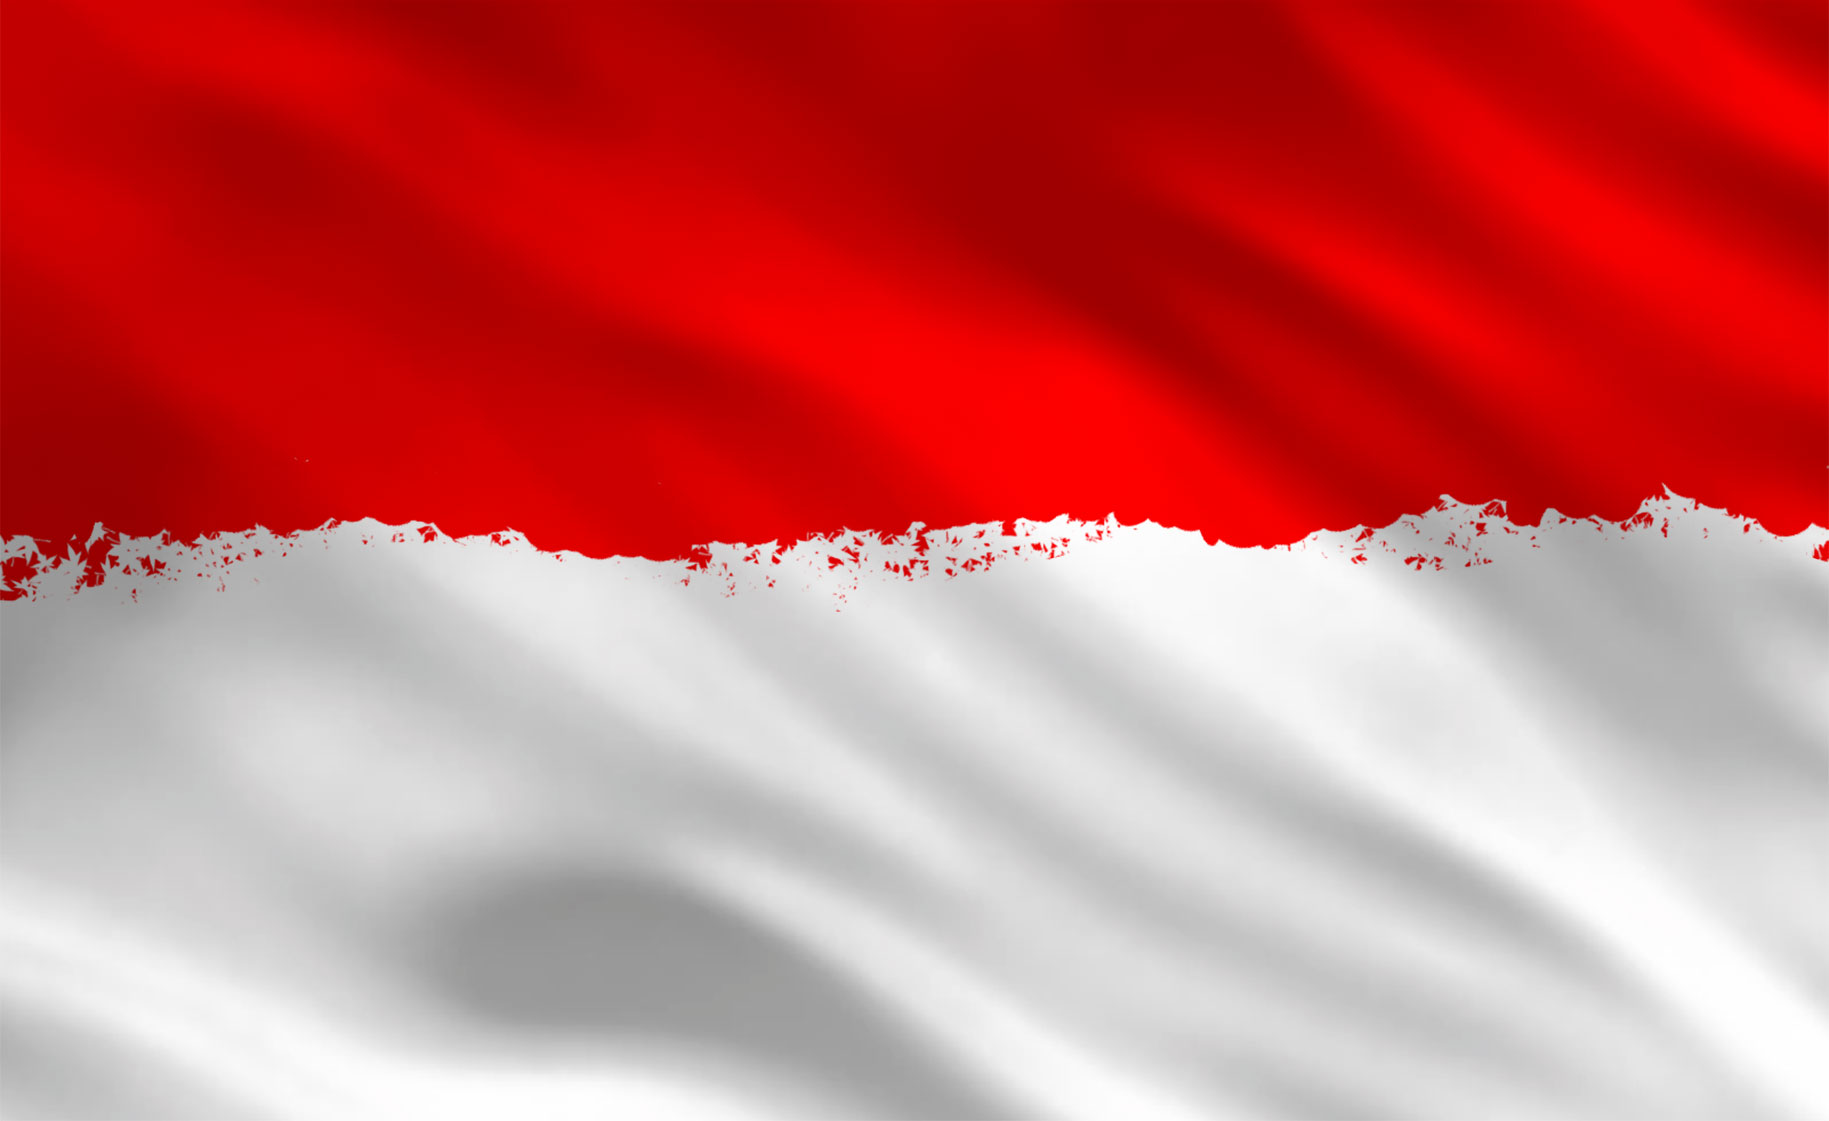 koleksi background bendera merah putih keren mas vian koleksi background bendera merah putih